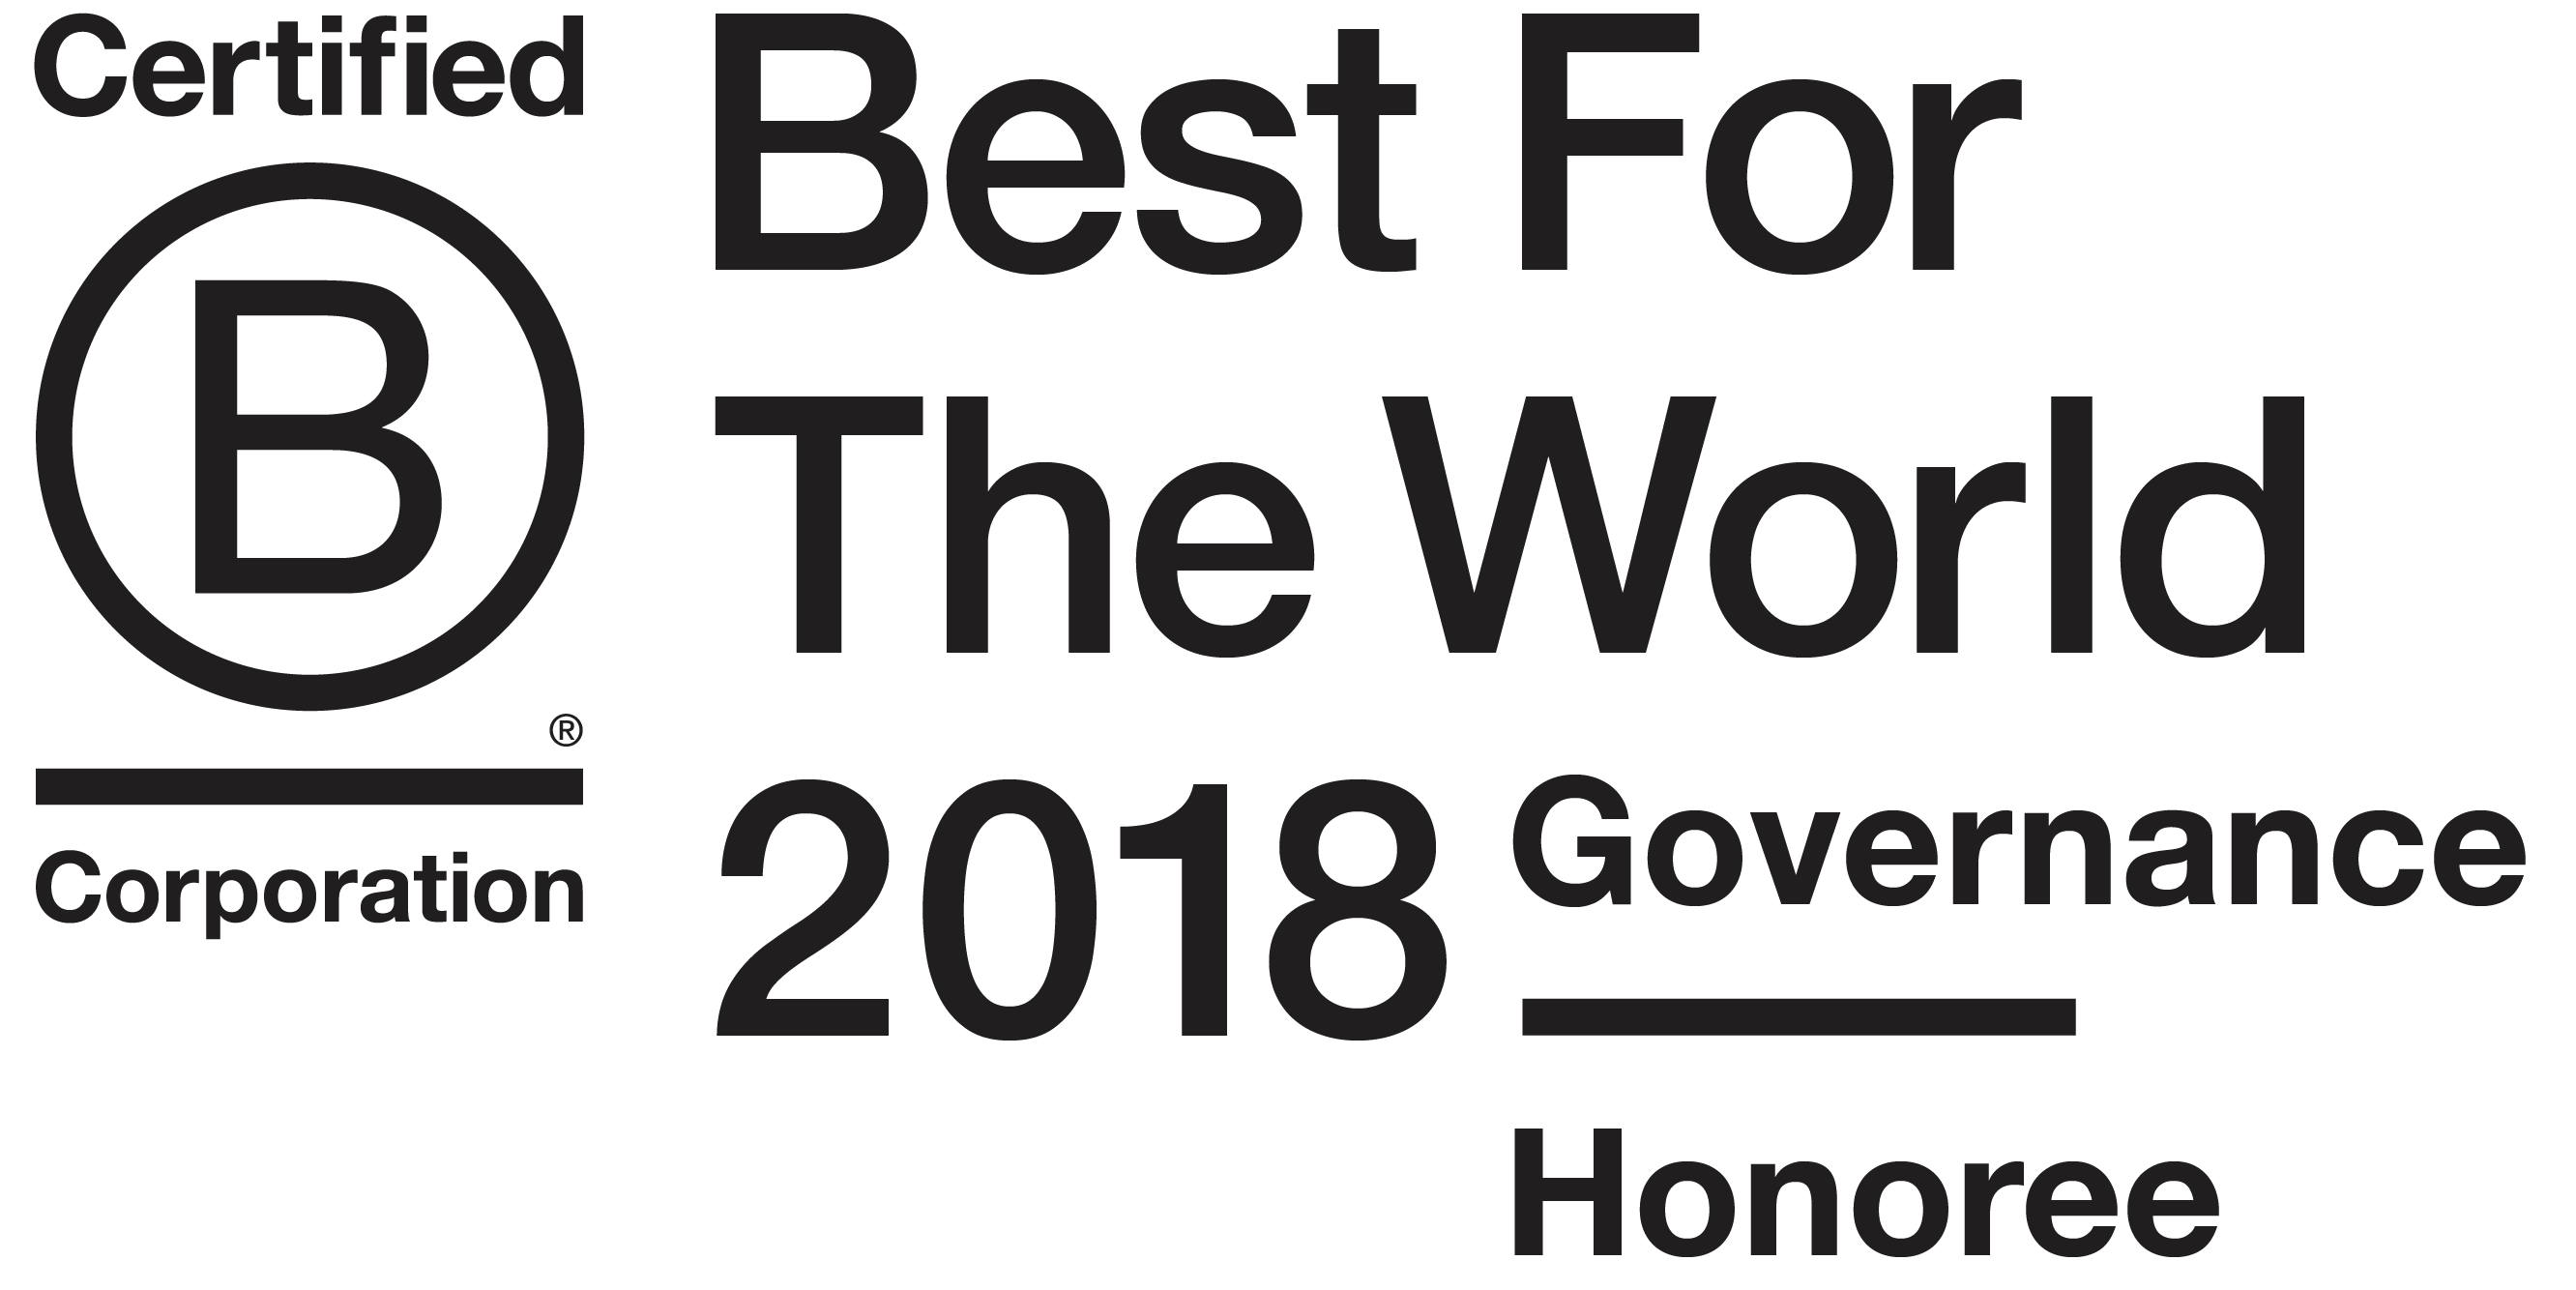 BFTW-2018-Governance-Black.png